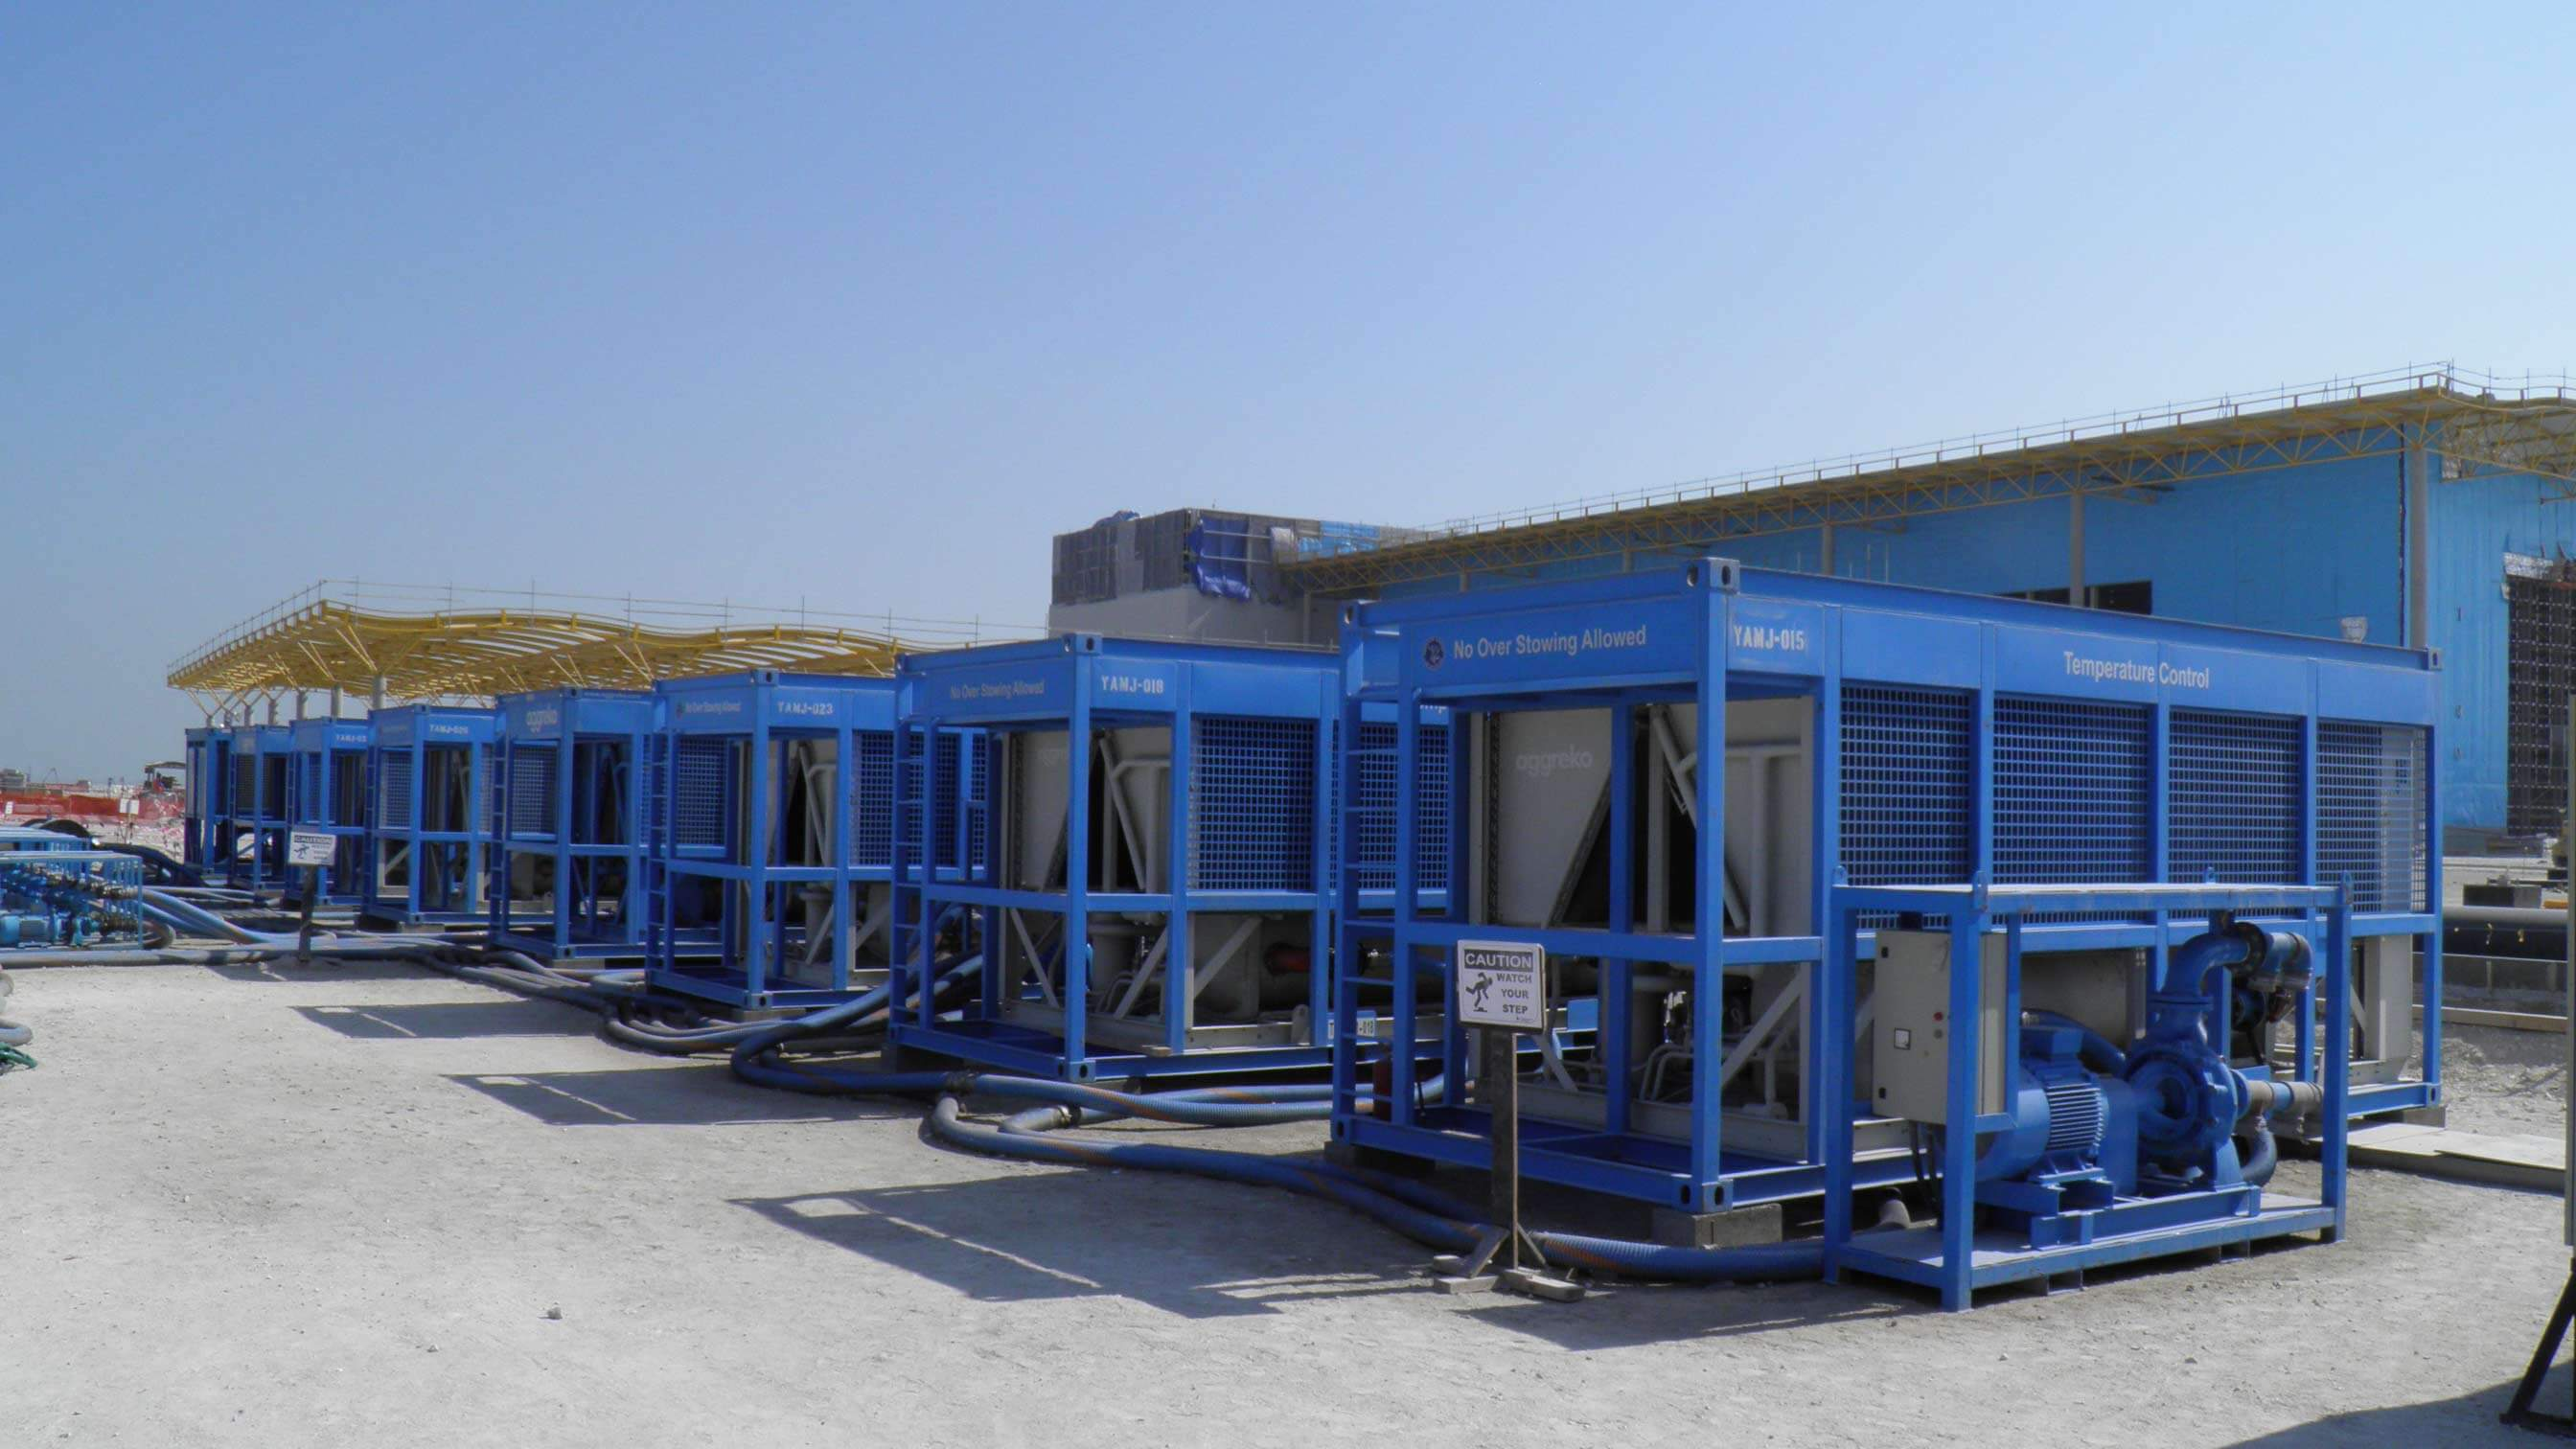 Row of Blue Aggreko Chillers in Oman